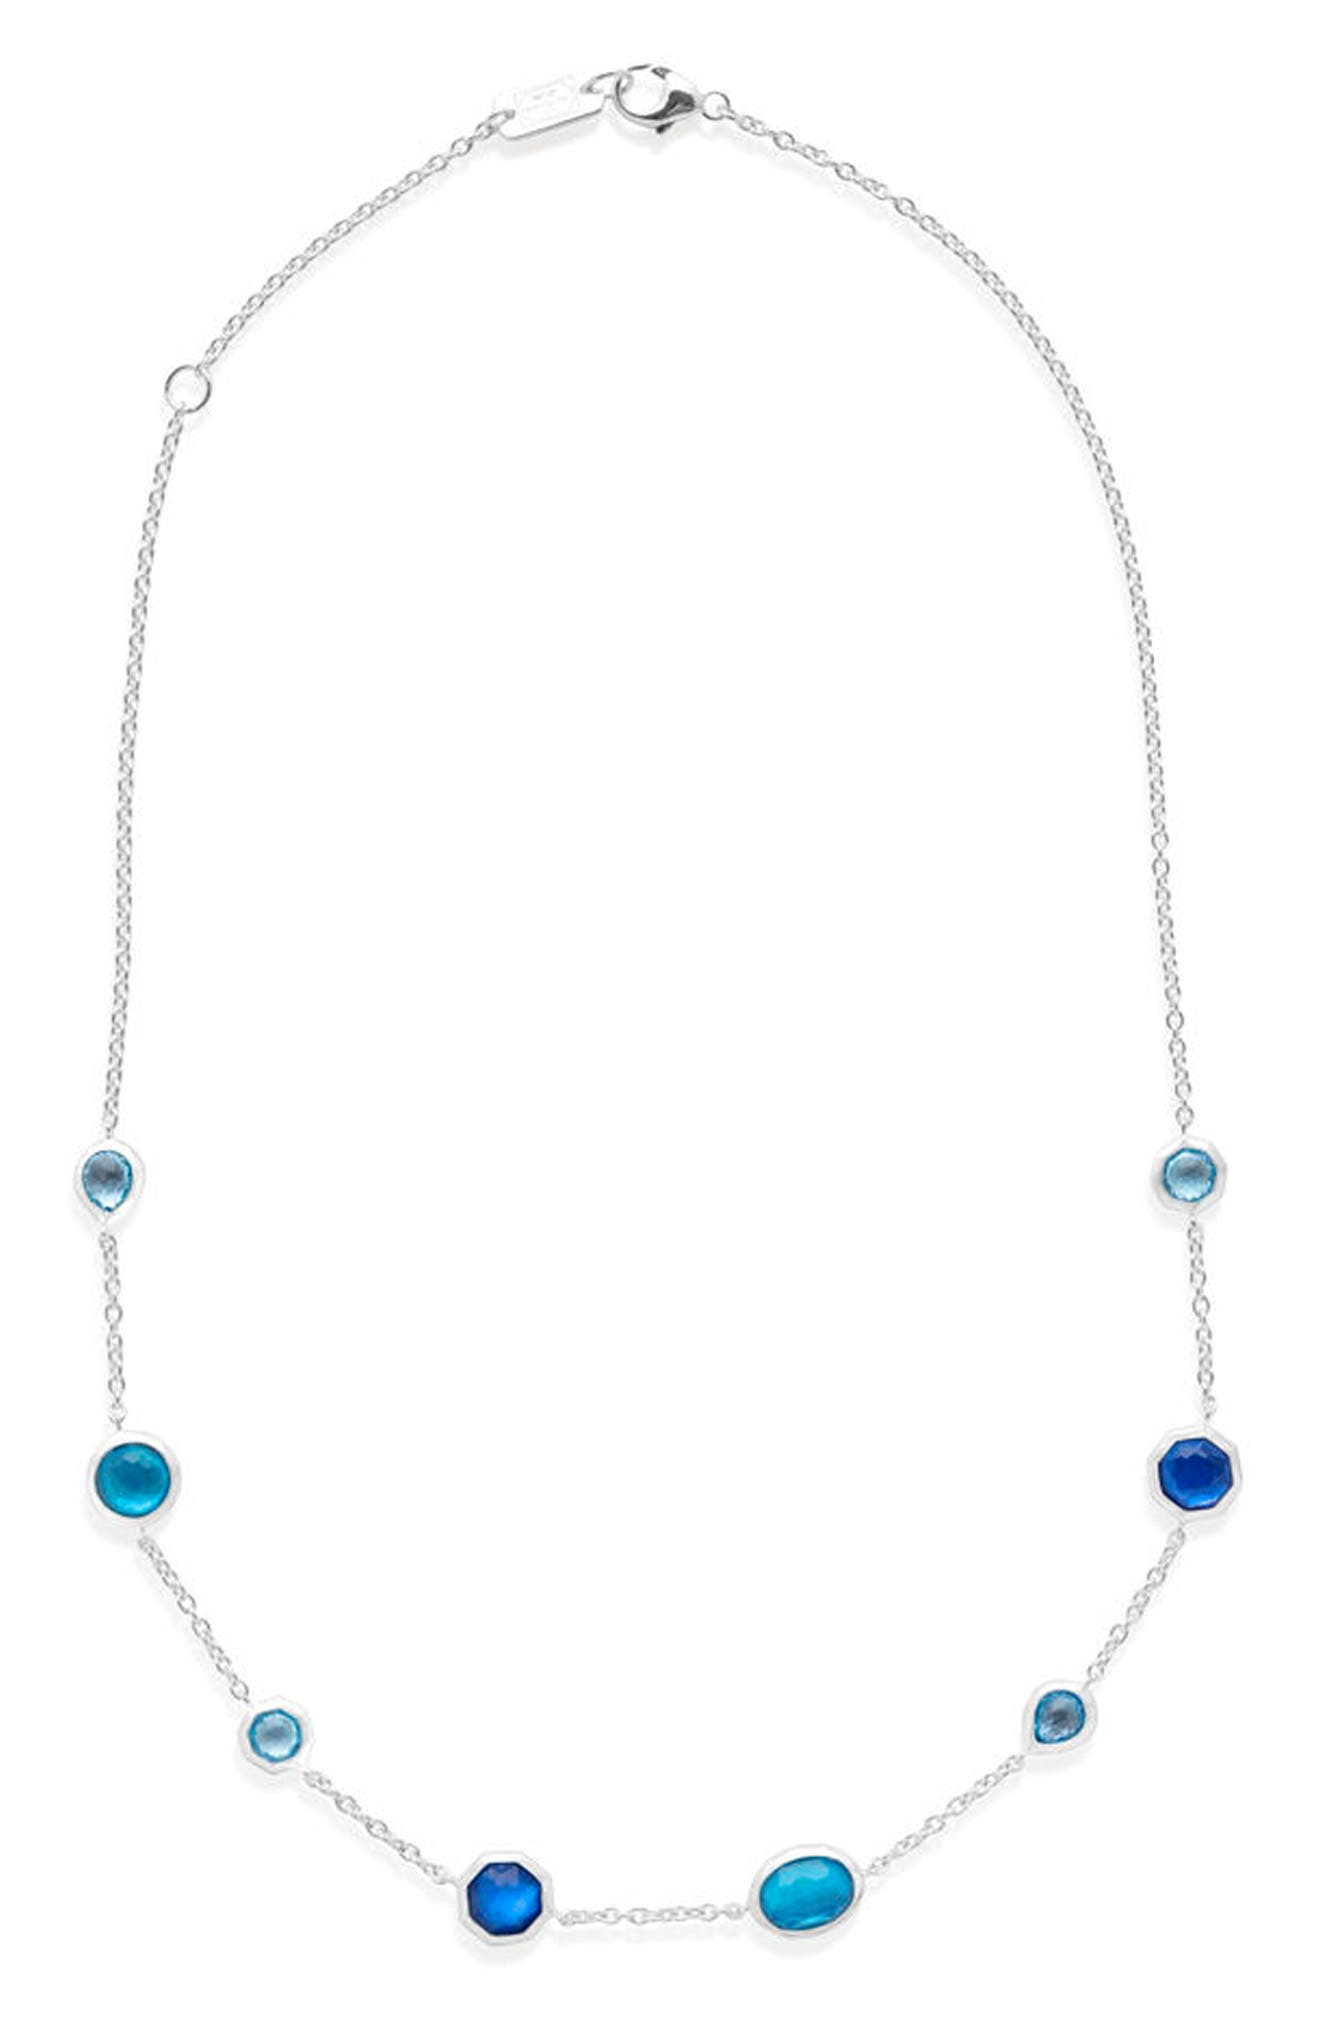 Ippolita Wonderland Station Necklace